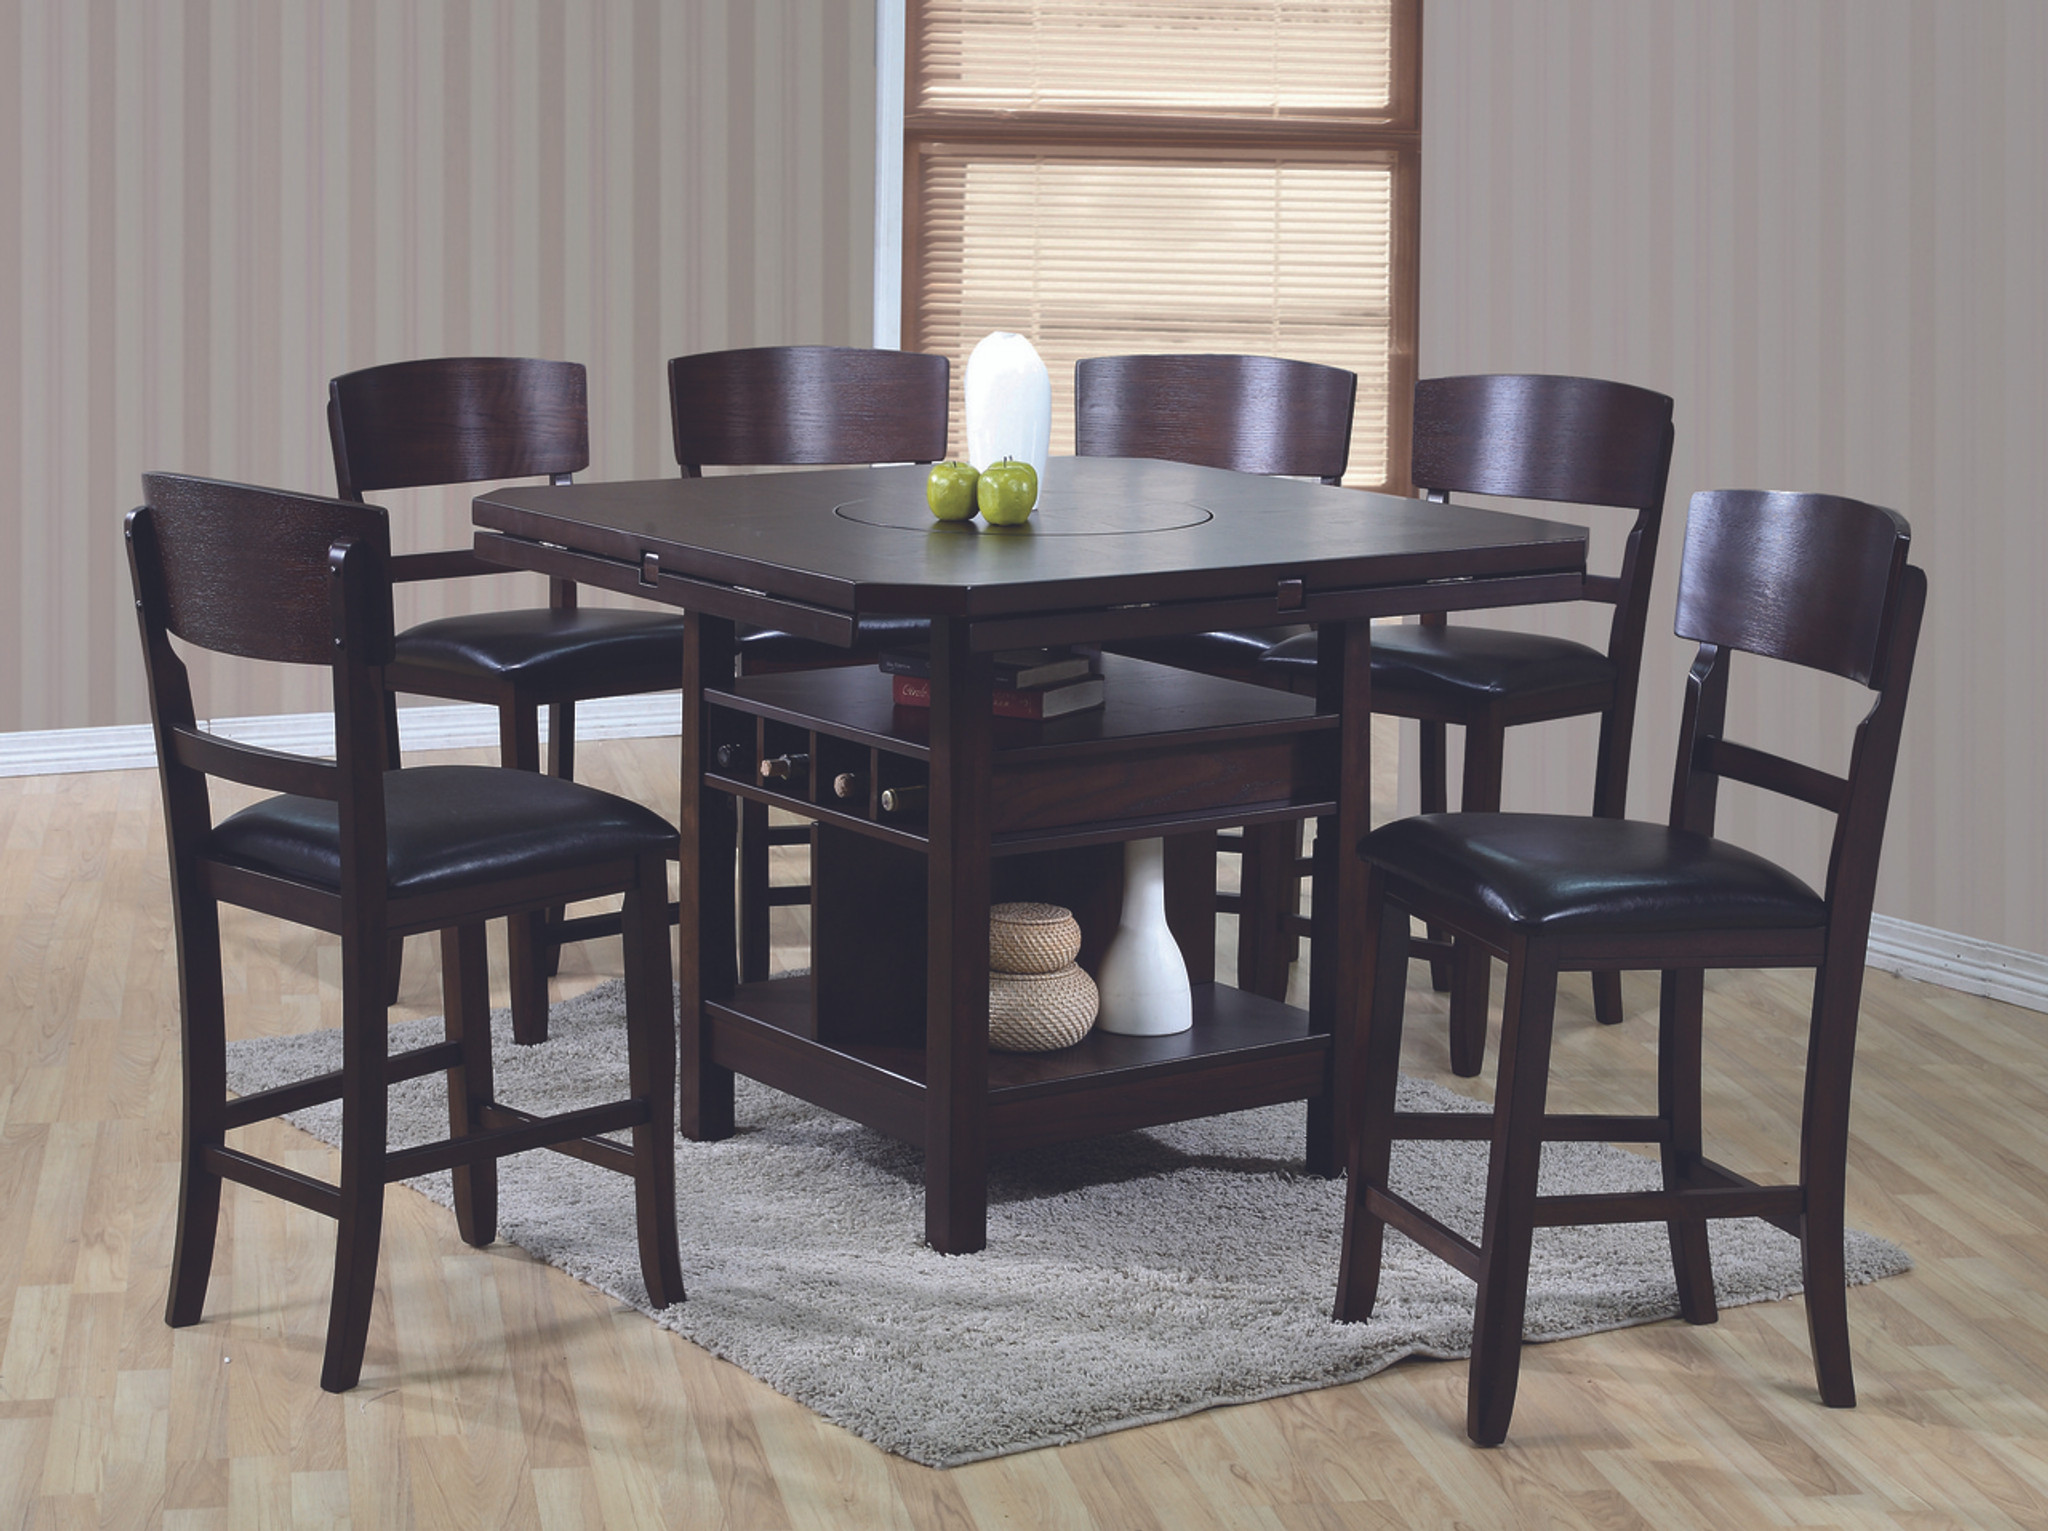 Espresso Dining Room Table With Leaf 2